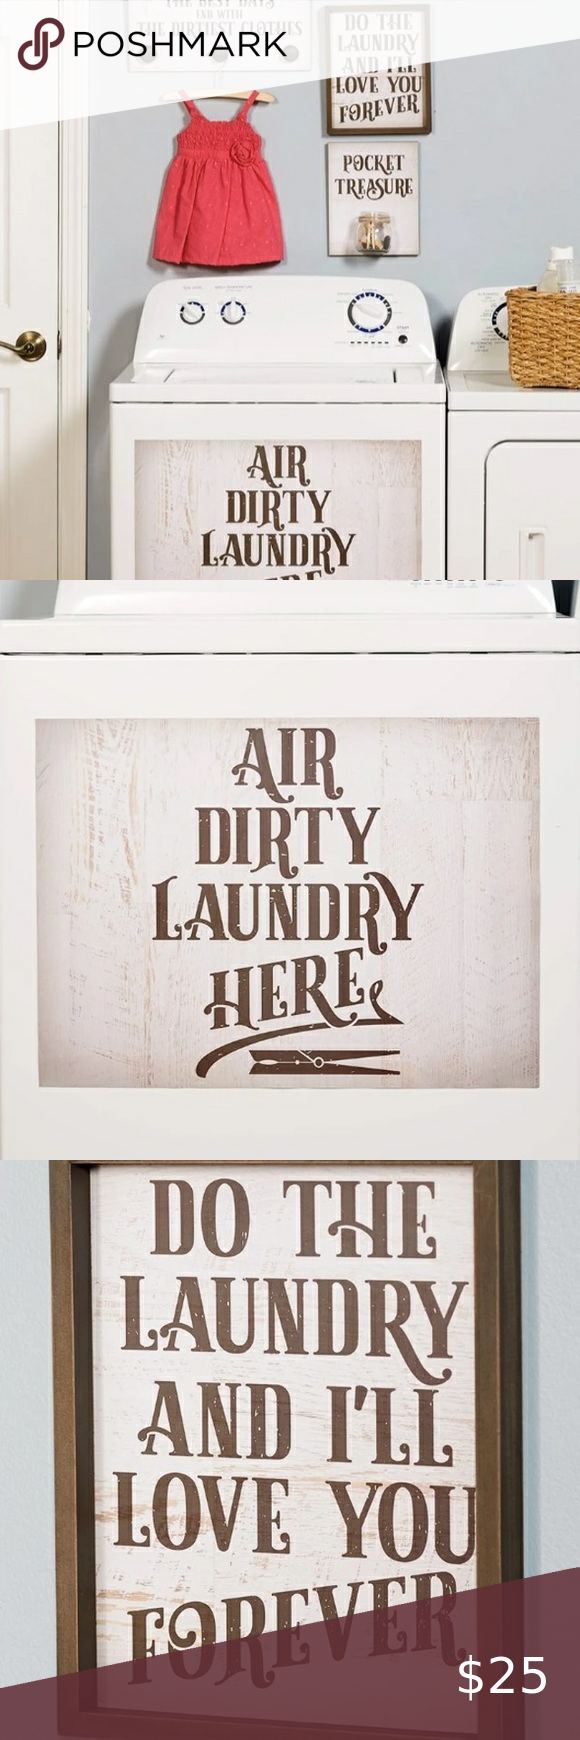 Farmhouse Style Laundry Room Signs in 2020 Room signs